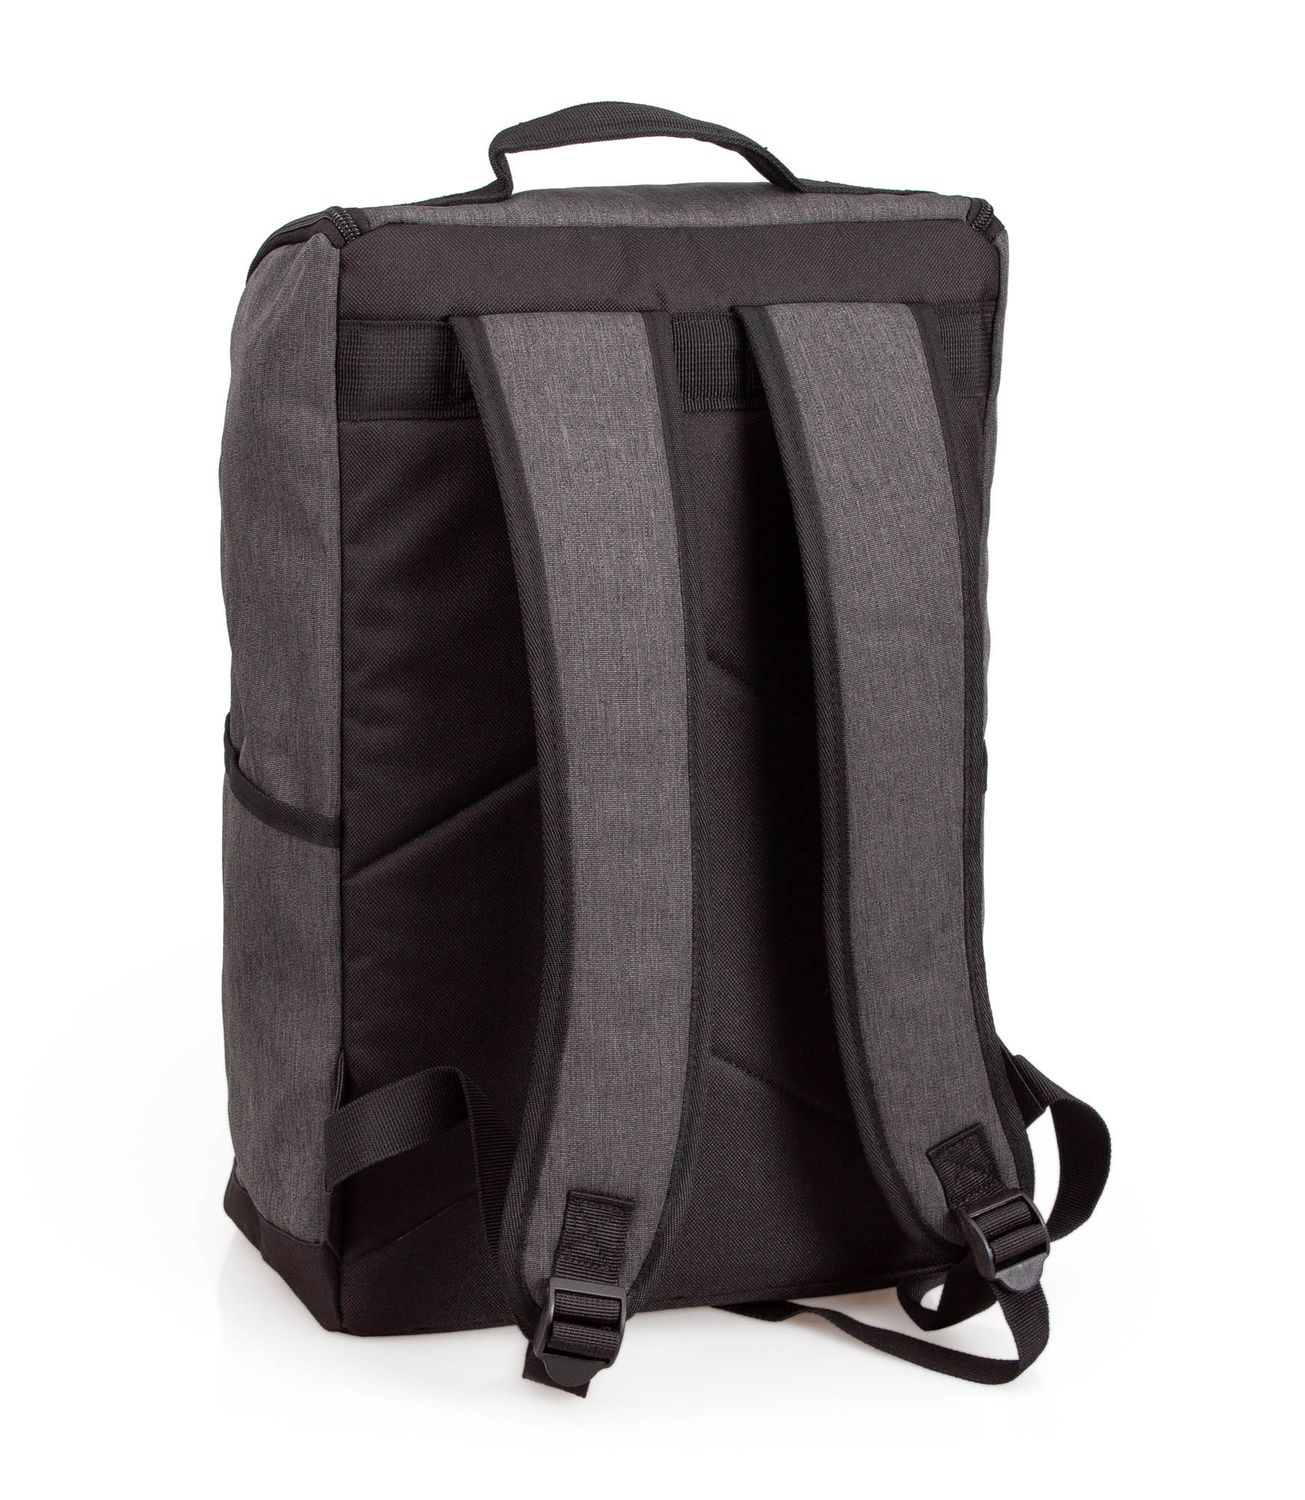 Backpack Rucksack EL CHARRO LP Grey – image 2